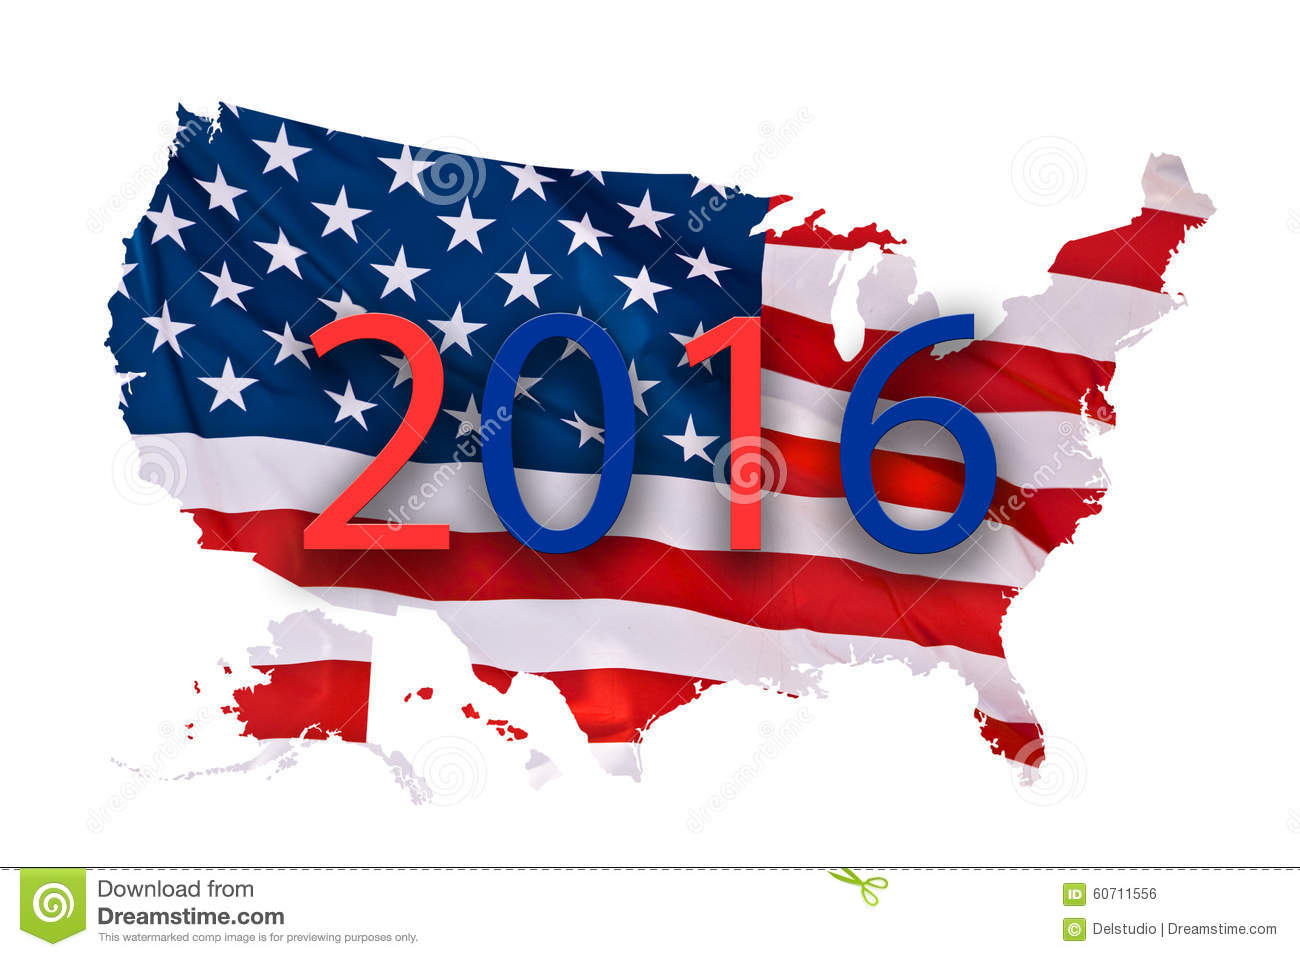 2016 US presidential elections map concept isolated on white